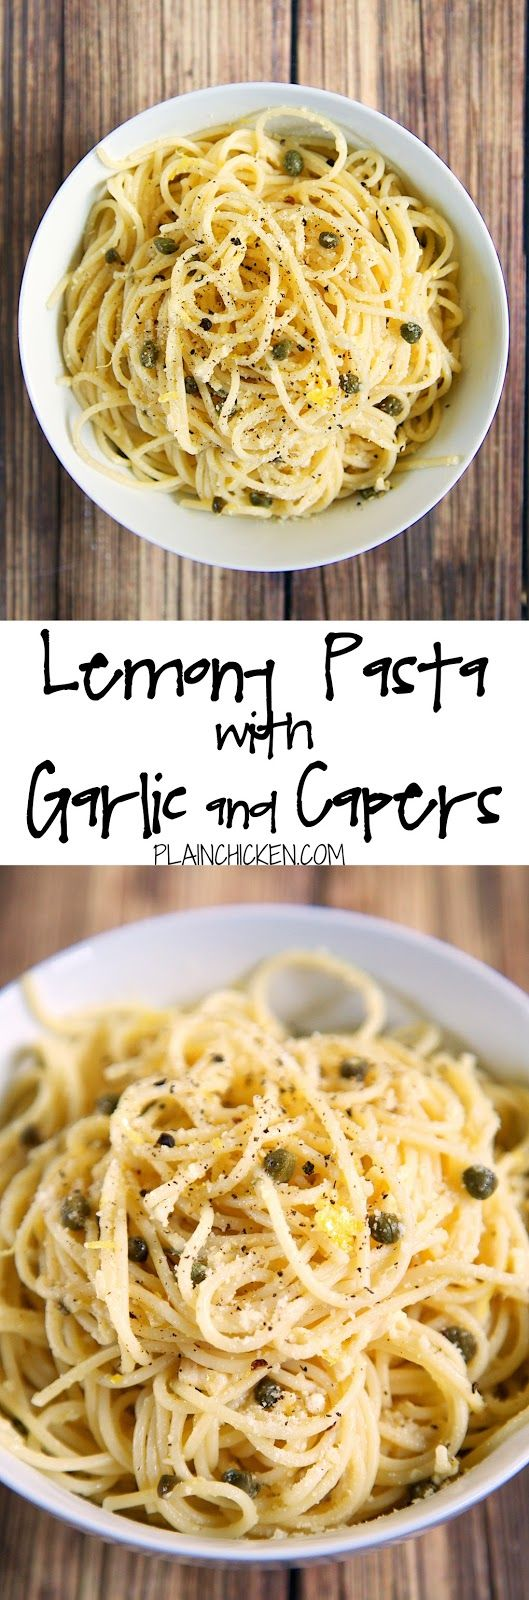 Lemony Pasta with Garlic and Capers